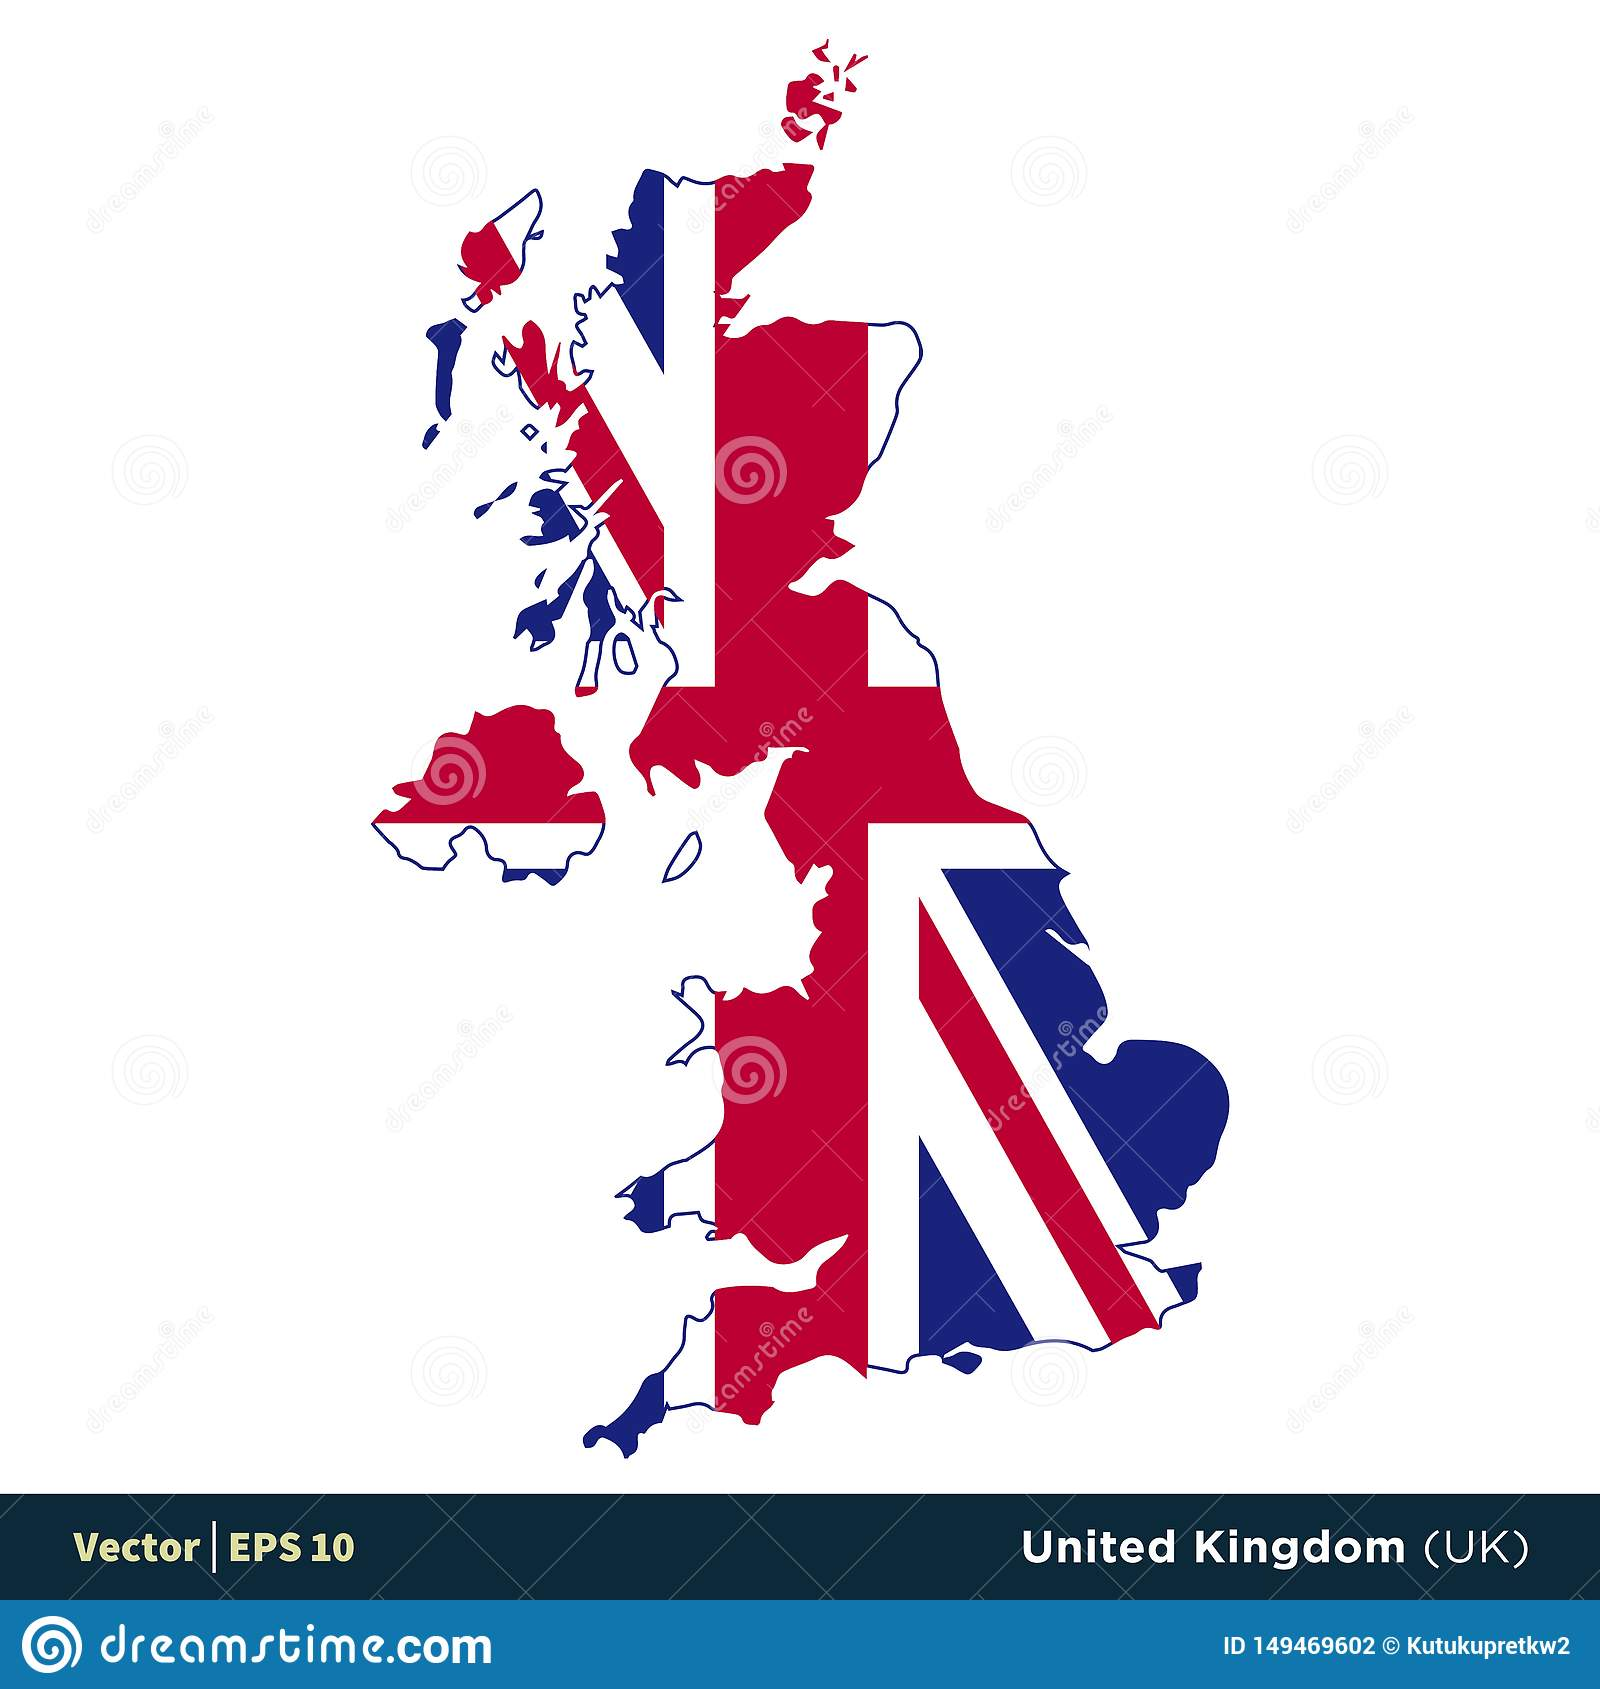 Map Of Uk Template.United Kingdom Uk Europe Countries Map And Flag Vector Icon